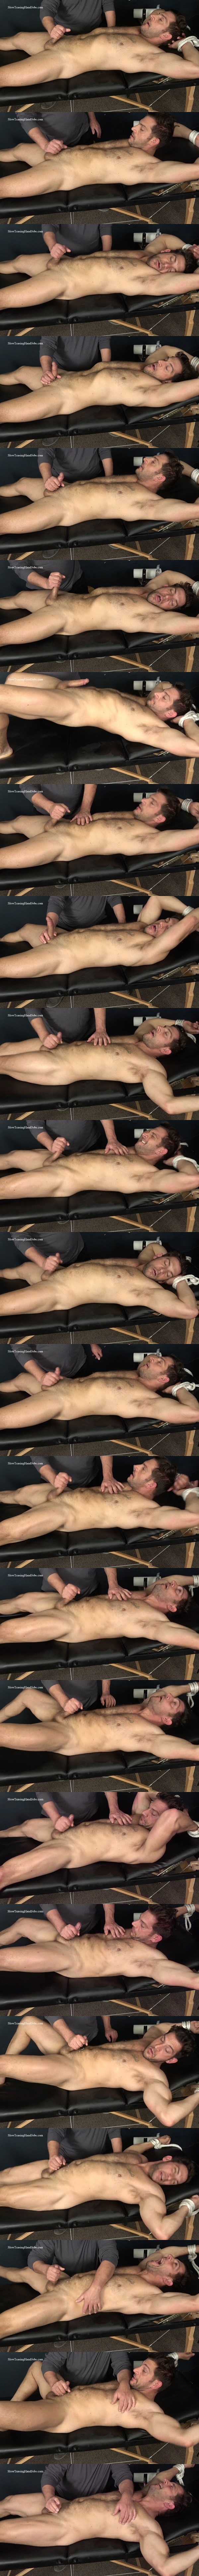 Slowteasinghandjobs - fuzzy macho straight beefcake, Italian muscle hunk Markey gets slowly teased, stroked, edged and jerked off in Markey Jerked Off and Milked 02